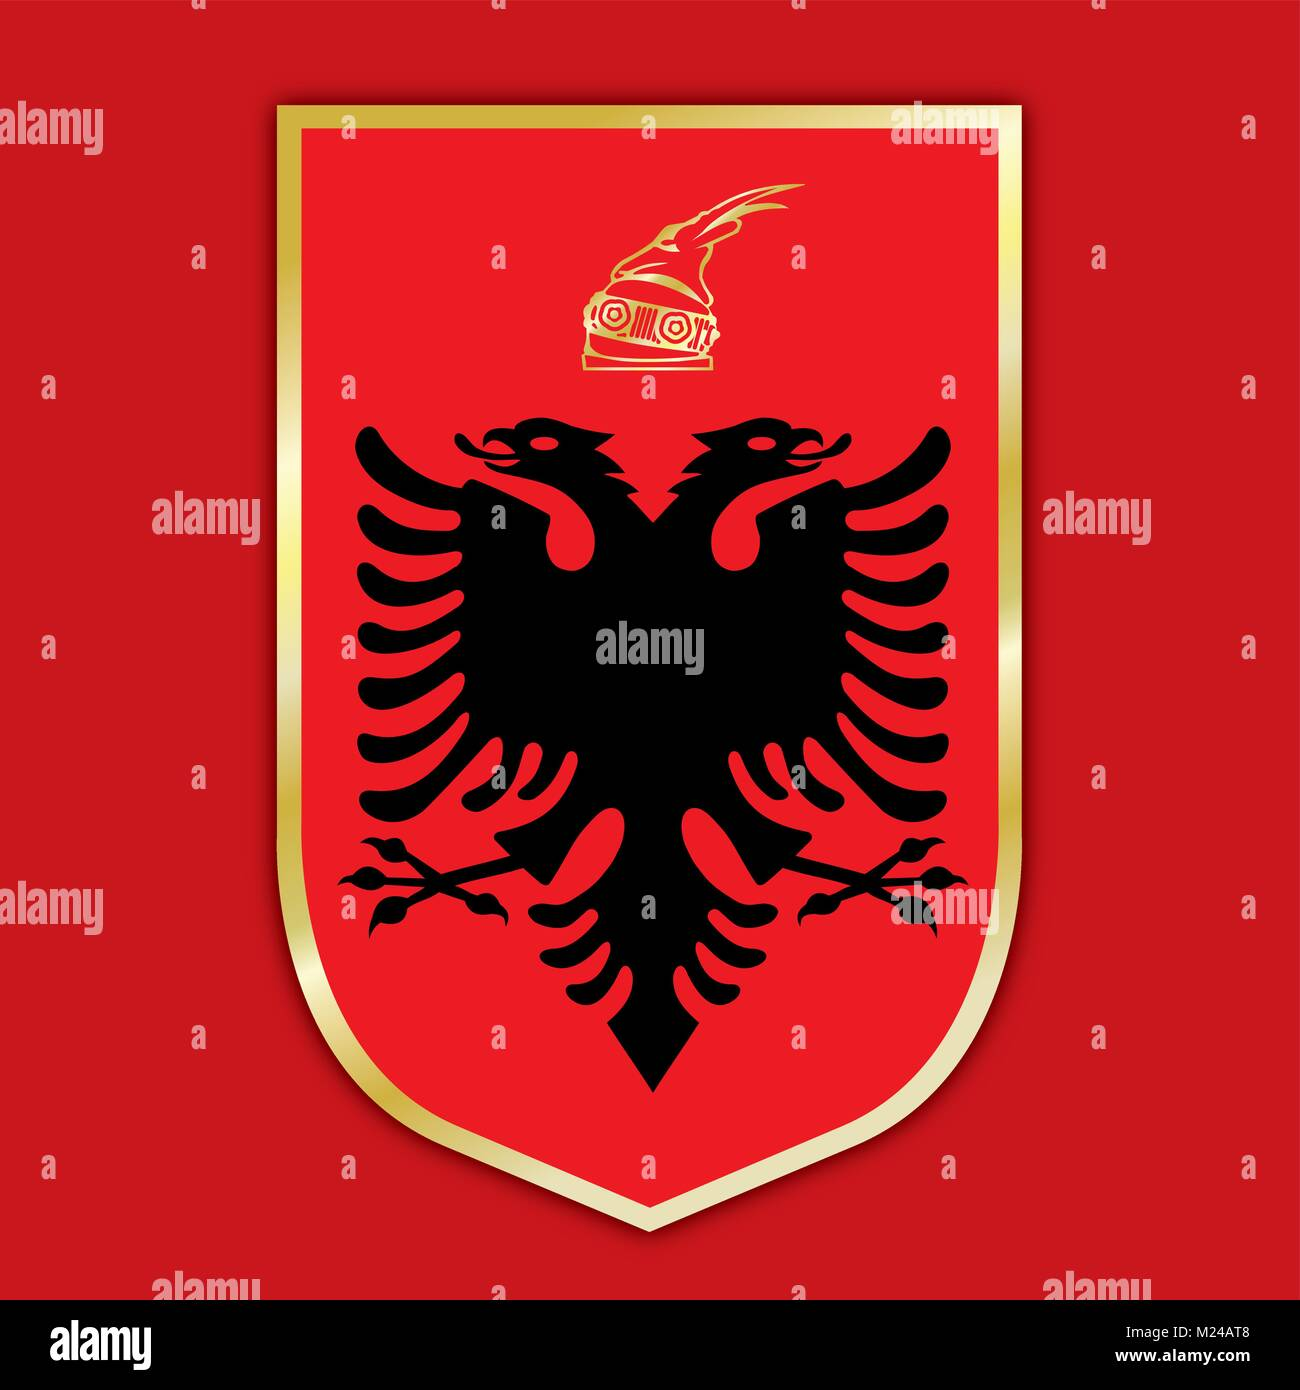 Albania coat of arms and flag, official symbols of the country - Stock Vector